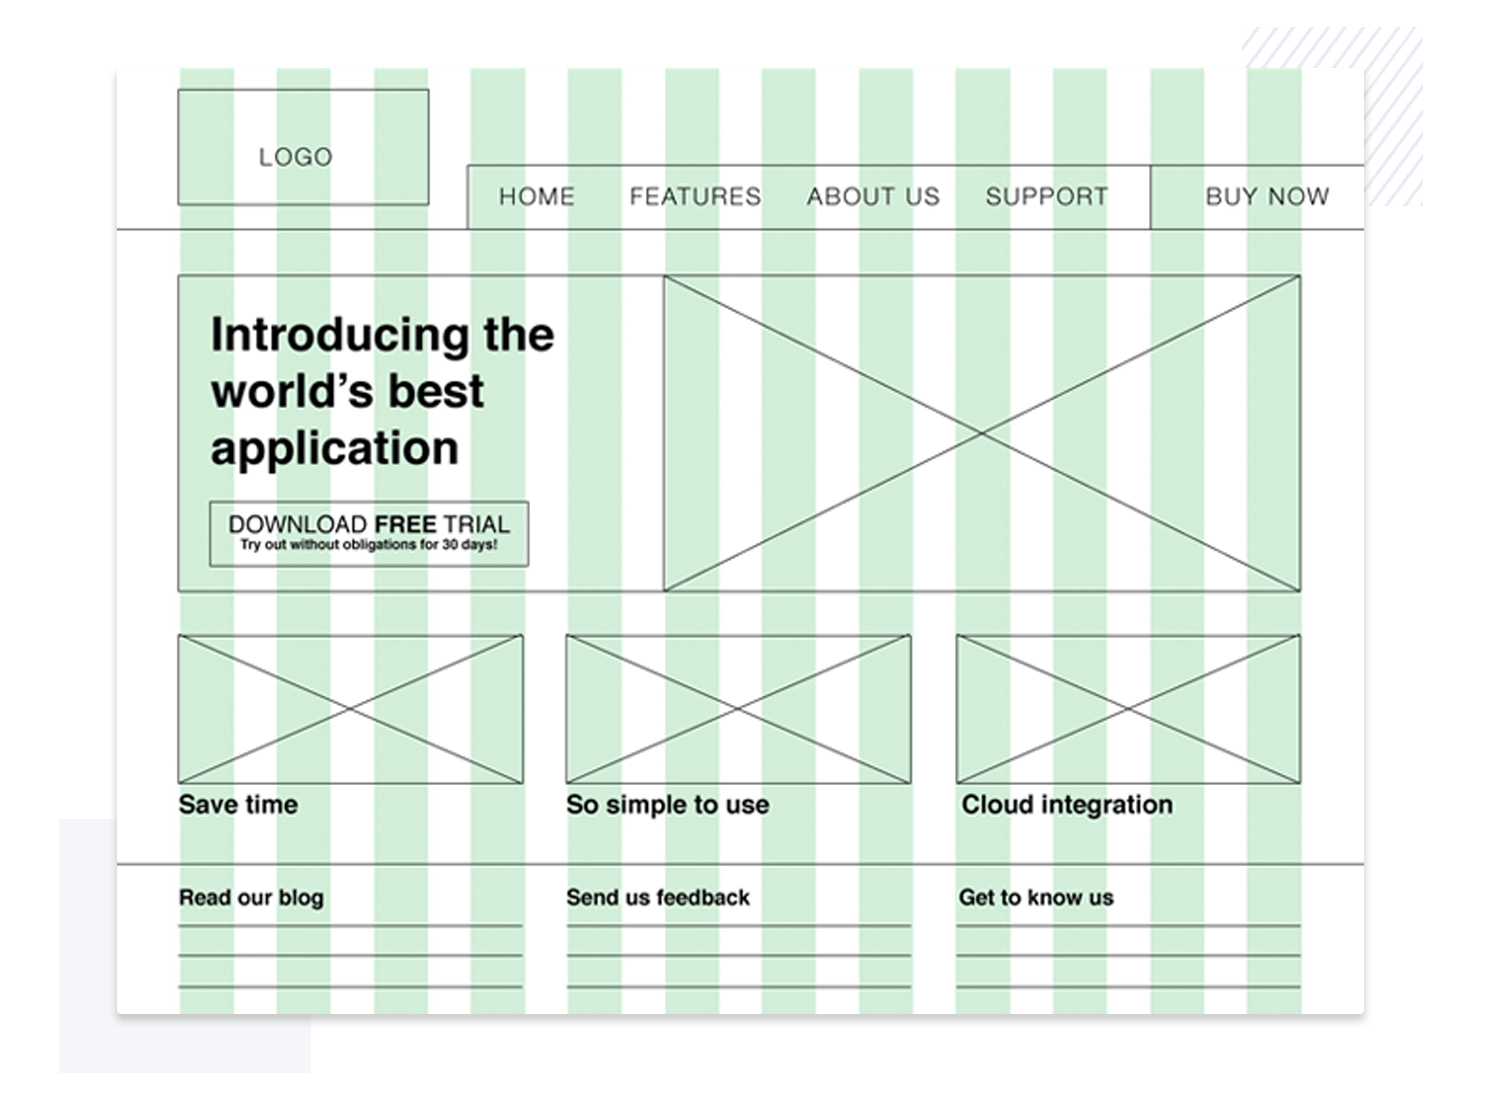 Showing of layout within wireframe design